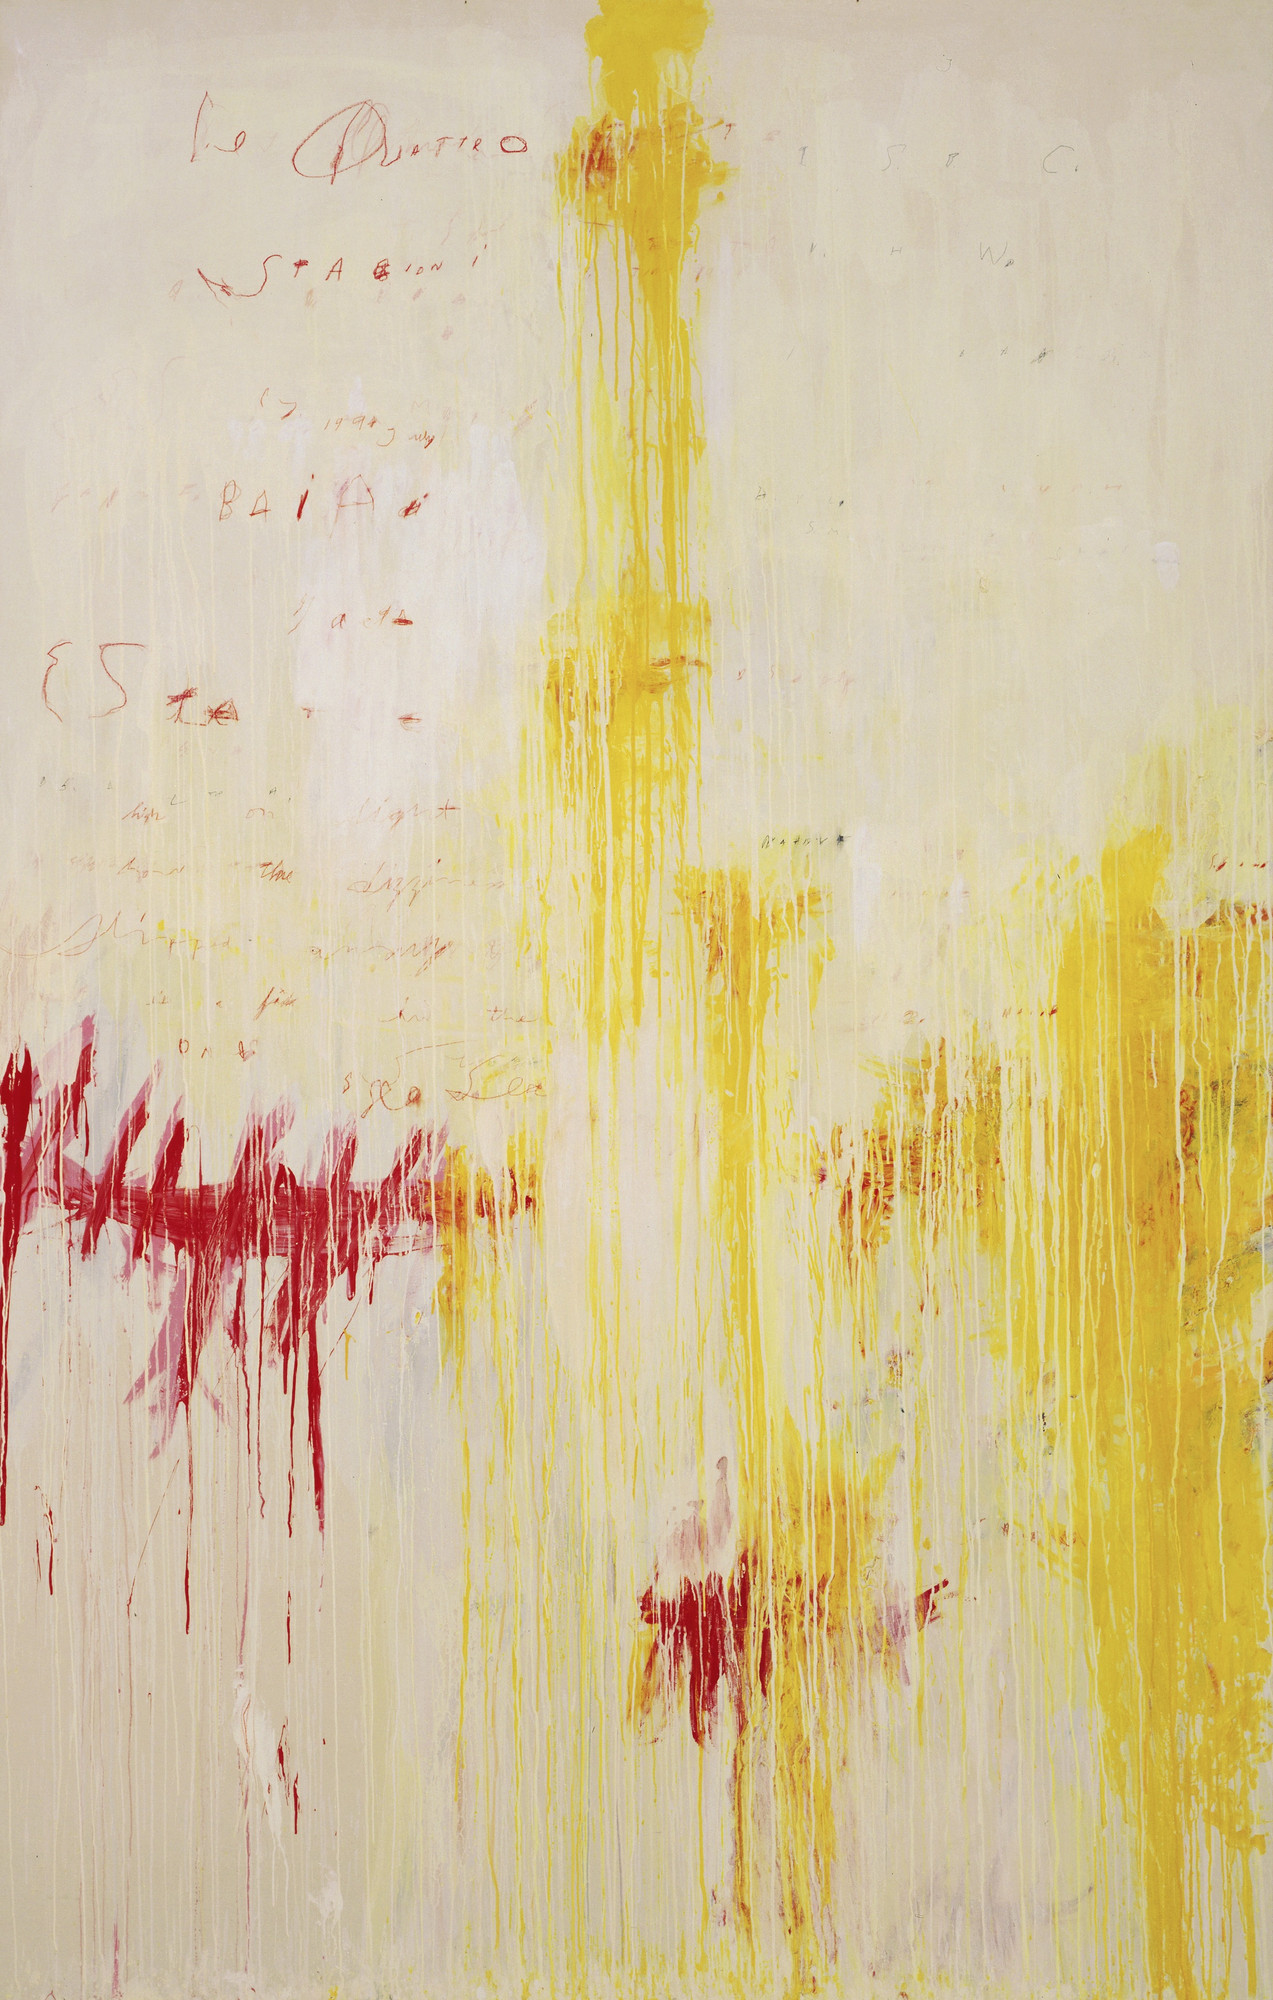 Cy Twombly. The Four Seasons: Spring, Summer, Autumn, and Winter. 1993-94